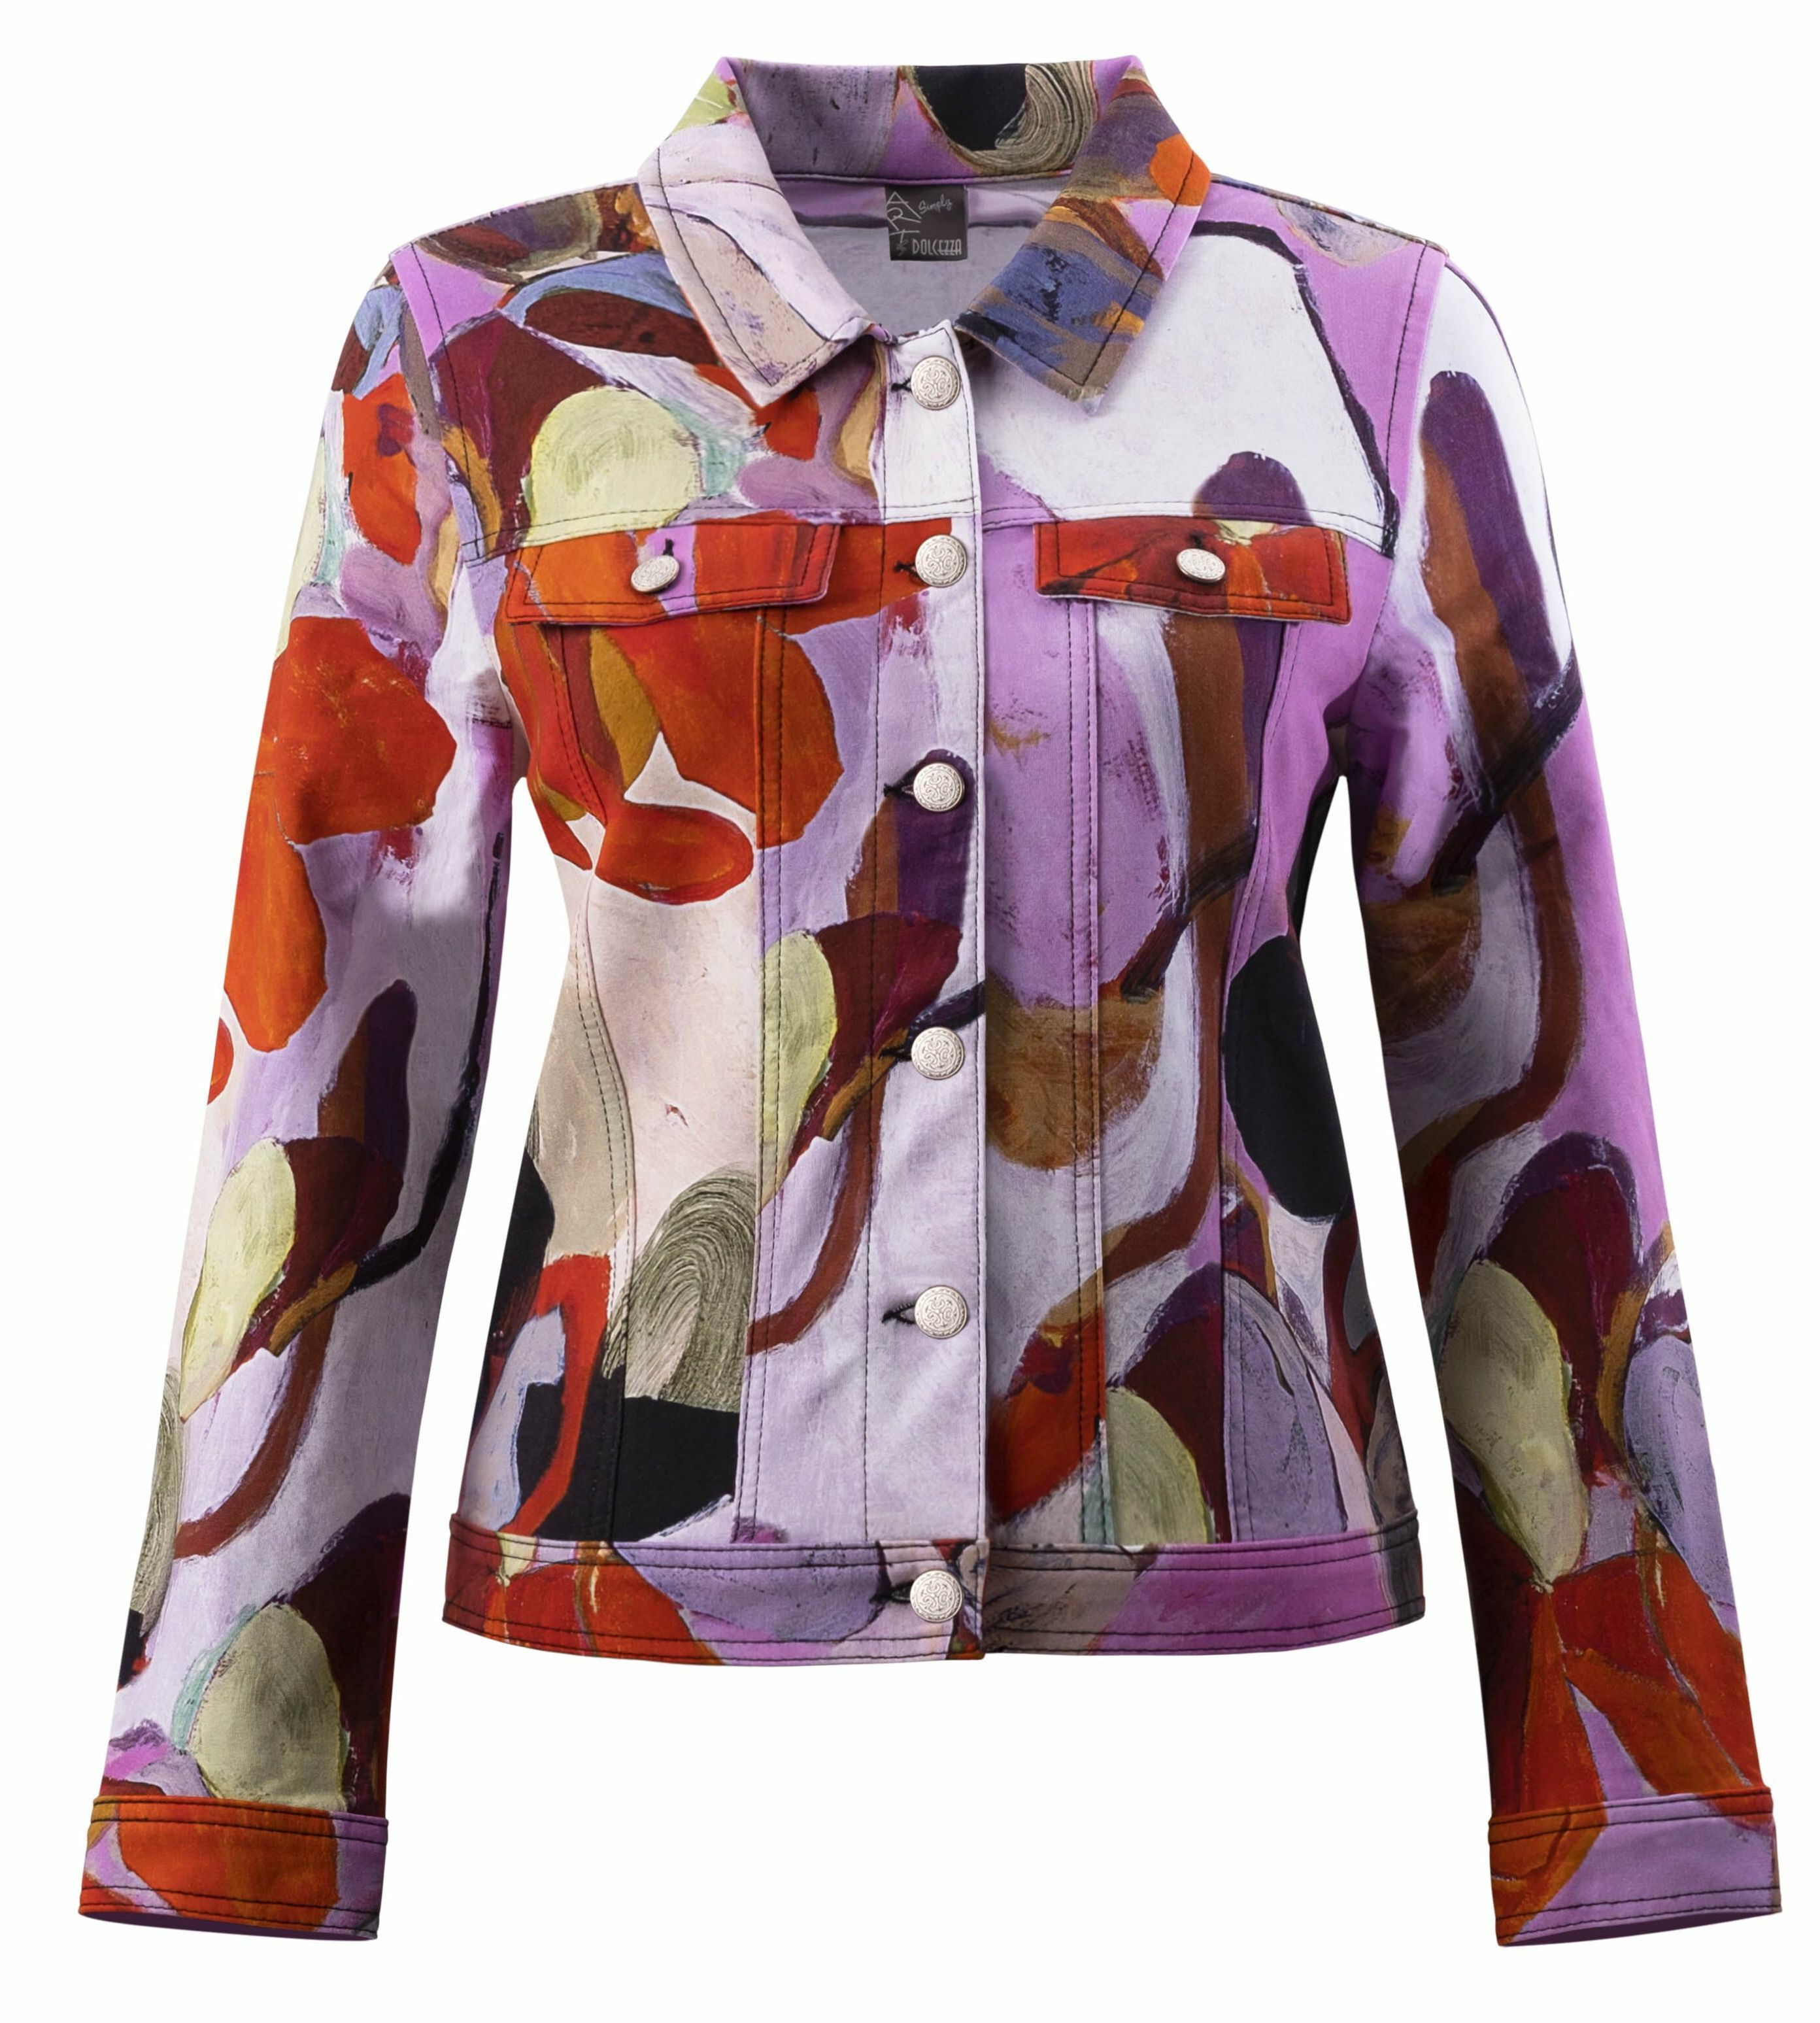 Simply Art Dolcezza: Blooms In Rouge Abstract Art Denim Jacket (1 Left!) DOLCEZZA_SIMPLYART_20726_N